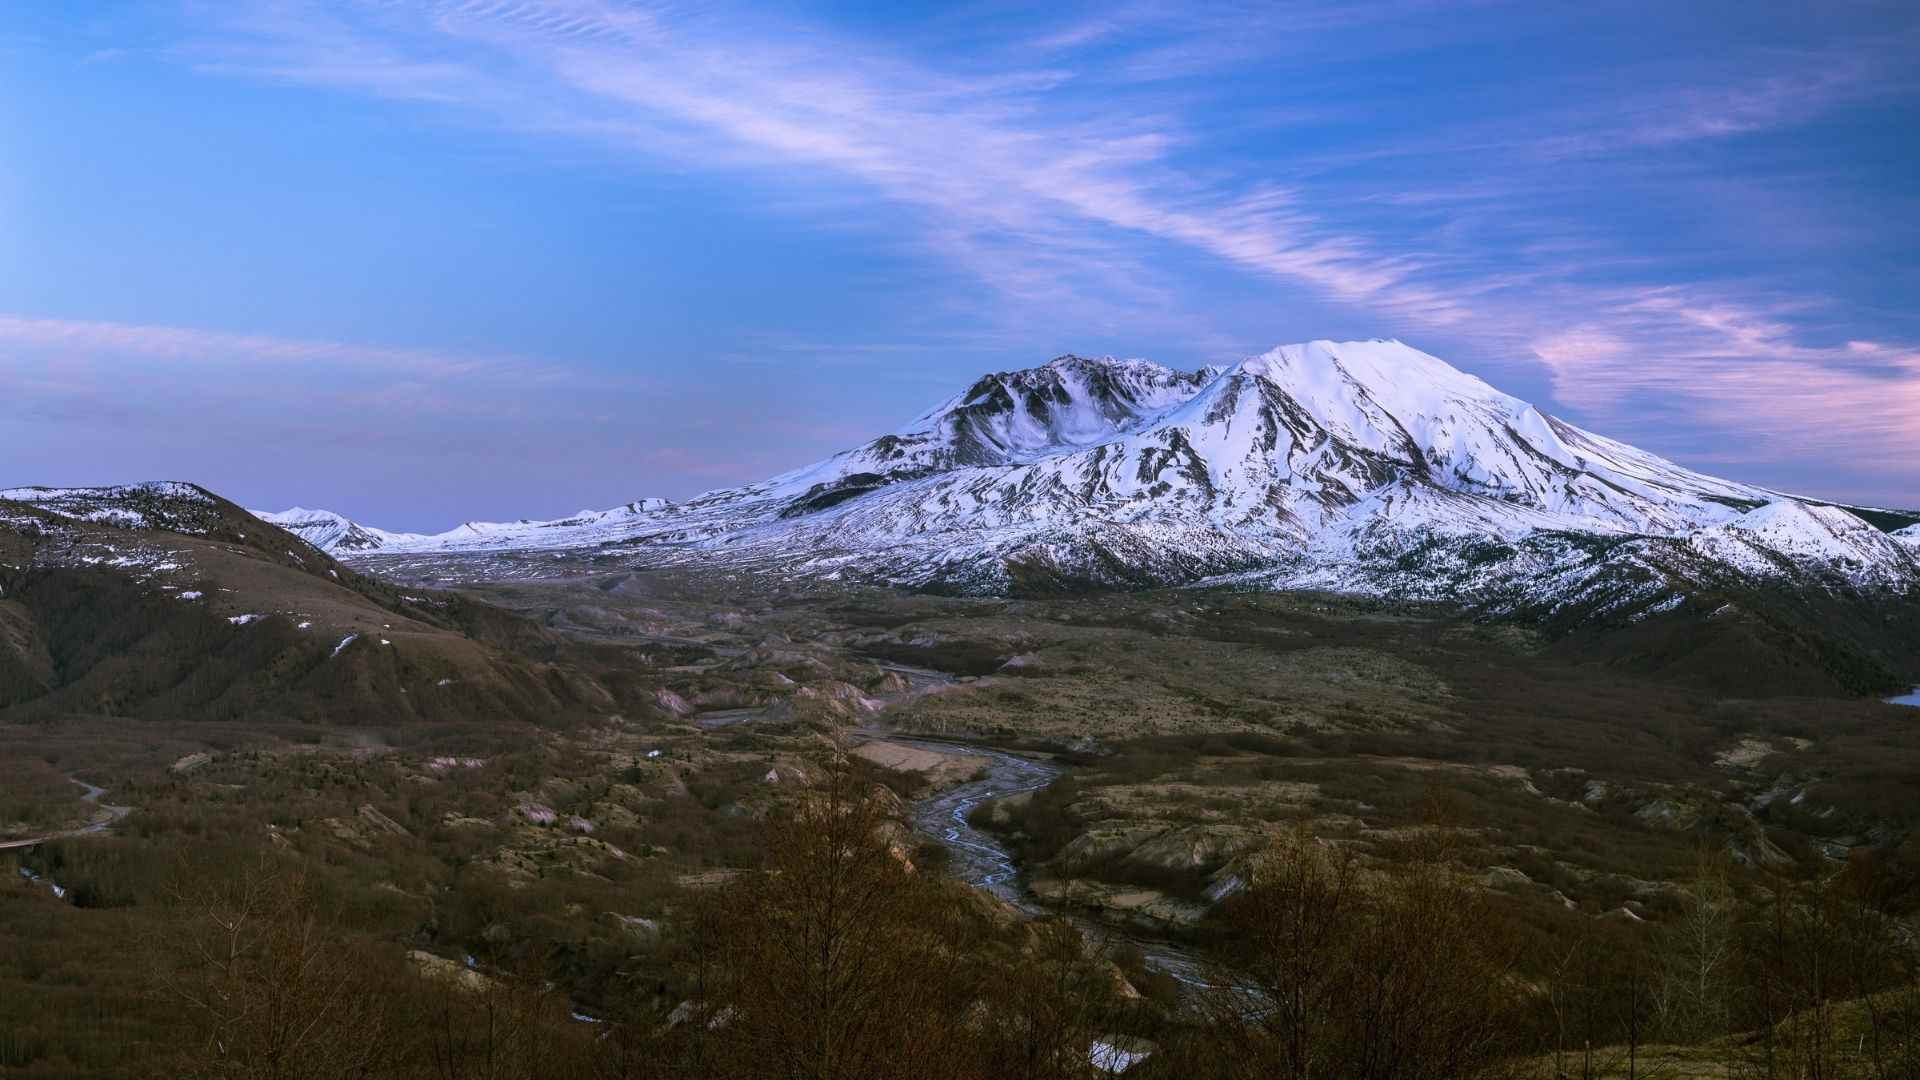 Mount St. Helens today